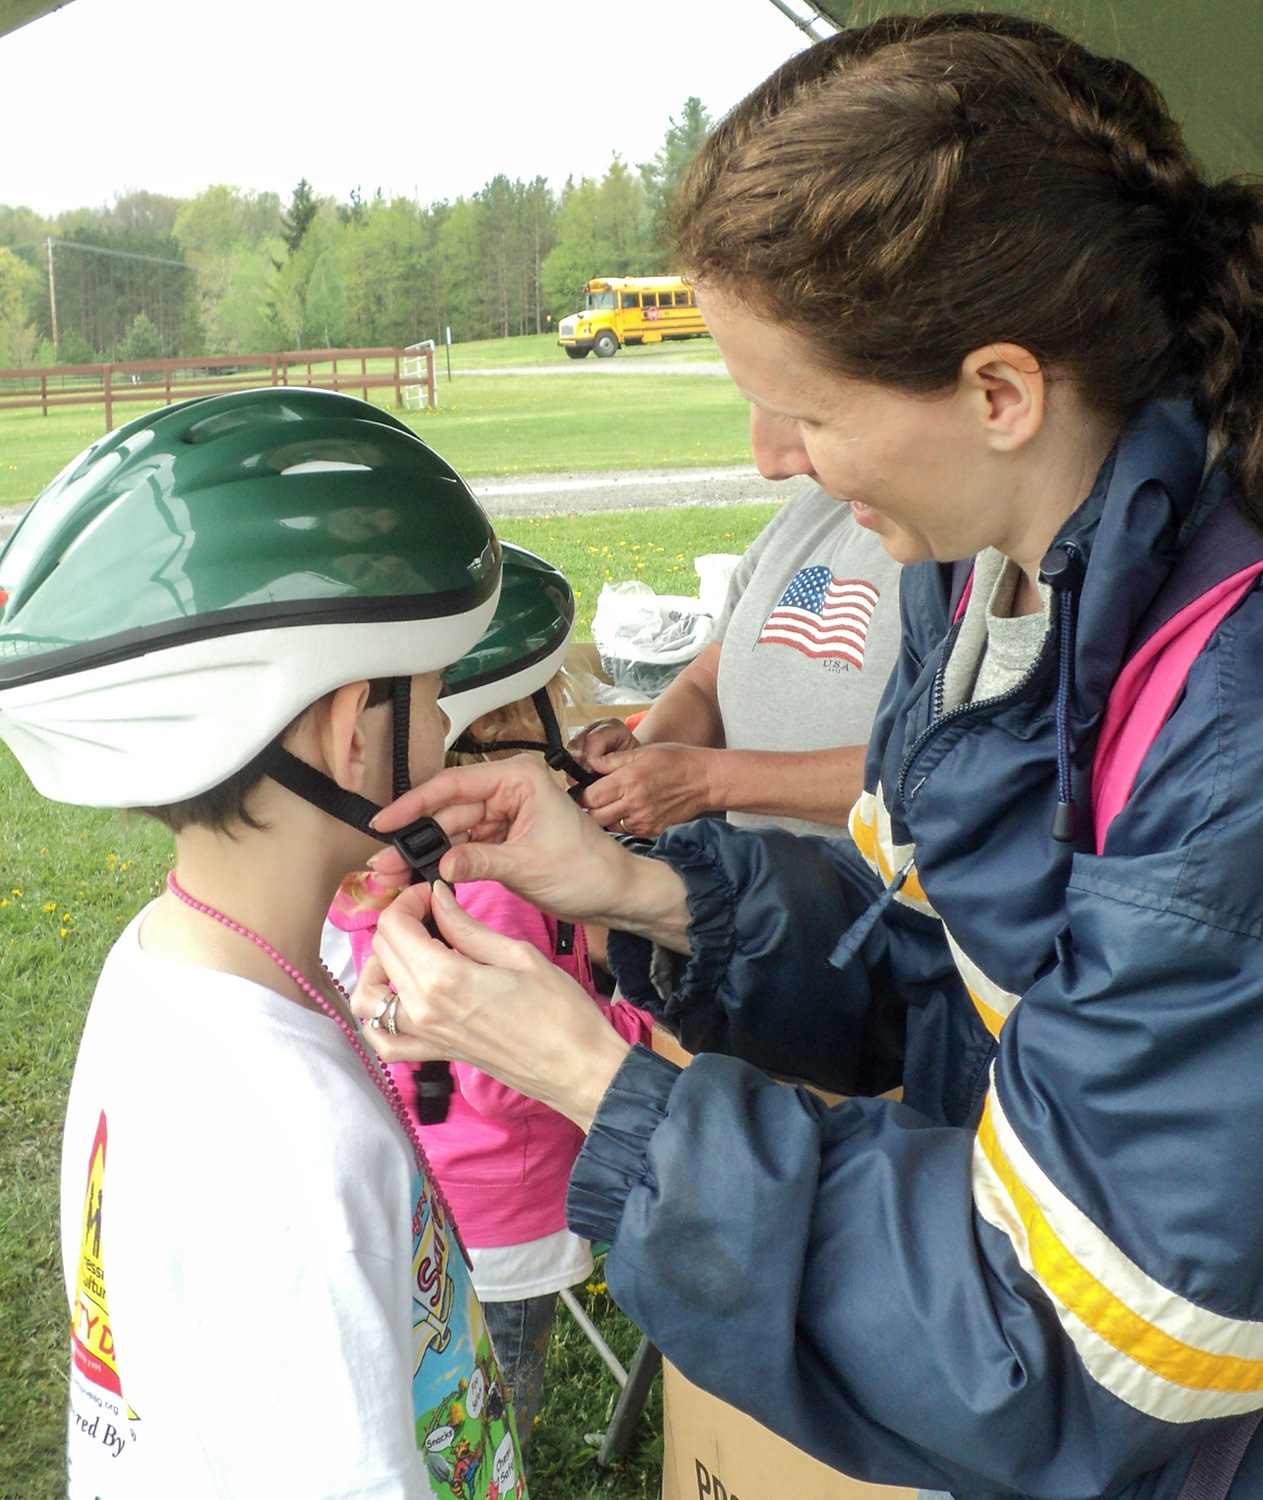 a woman adjusts the clasp on a childs safety helmet